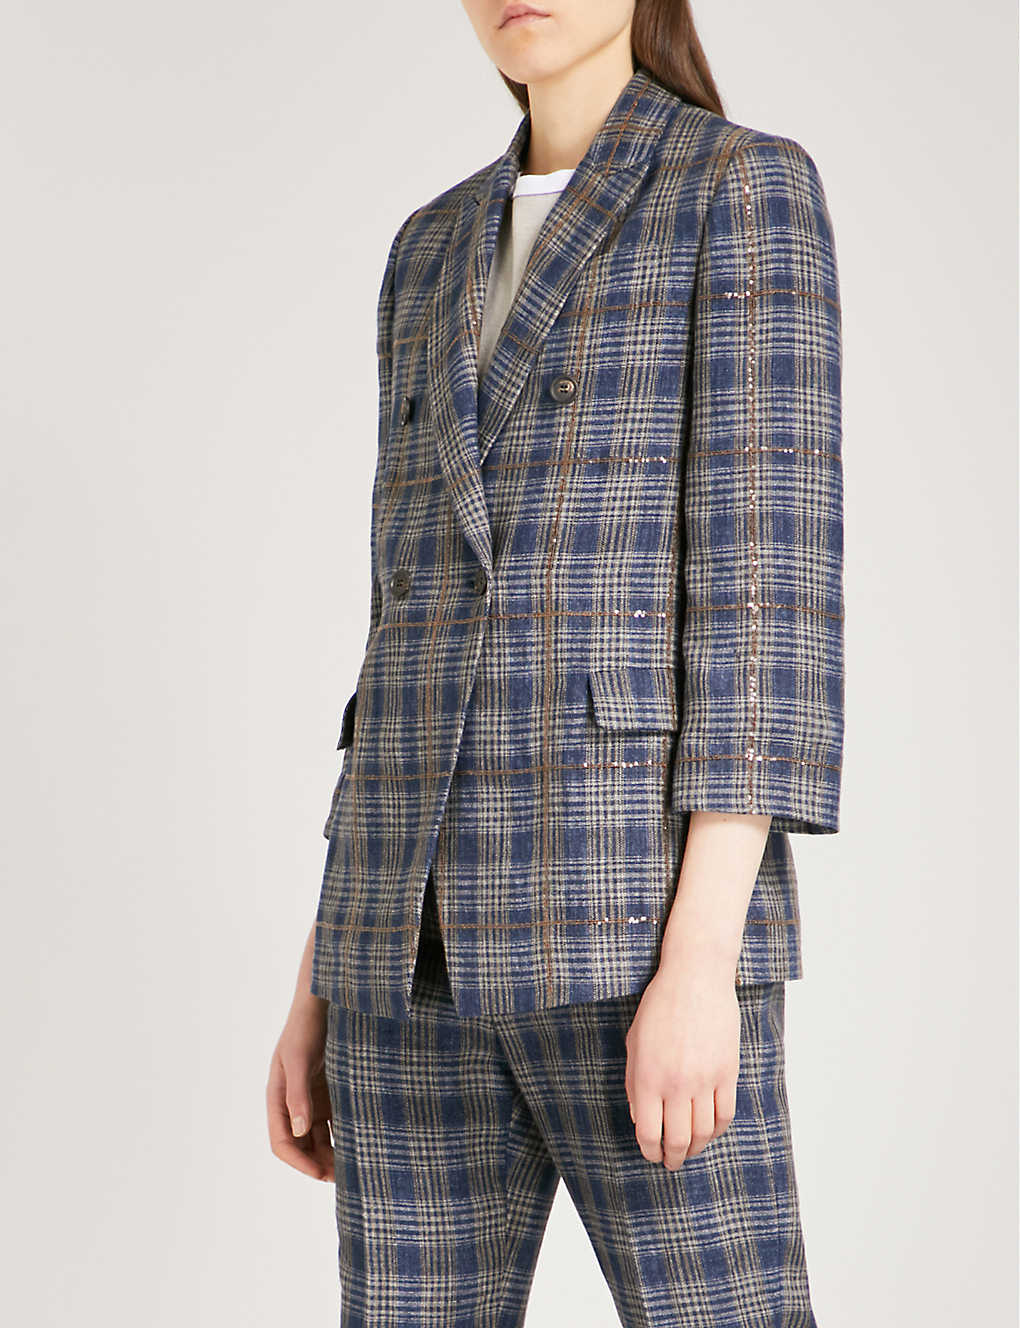 Sequined Checked Woven Blazer - Blue Brunello Cucinelli Outlet With Mastercard Outlet Where Can You Find Perfect Sale Online jpuFp0